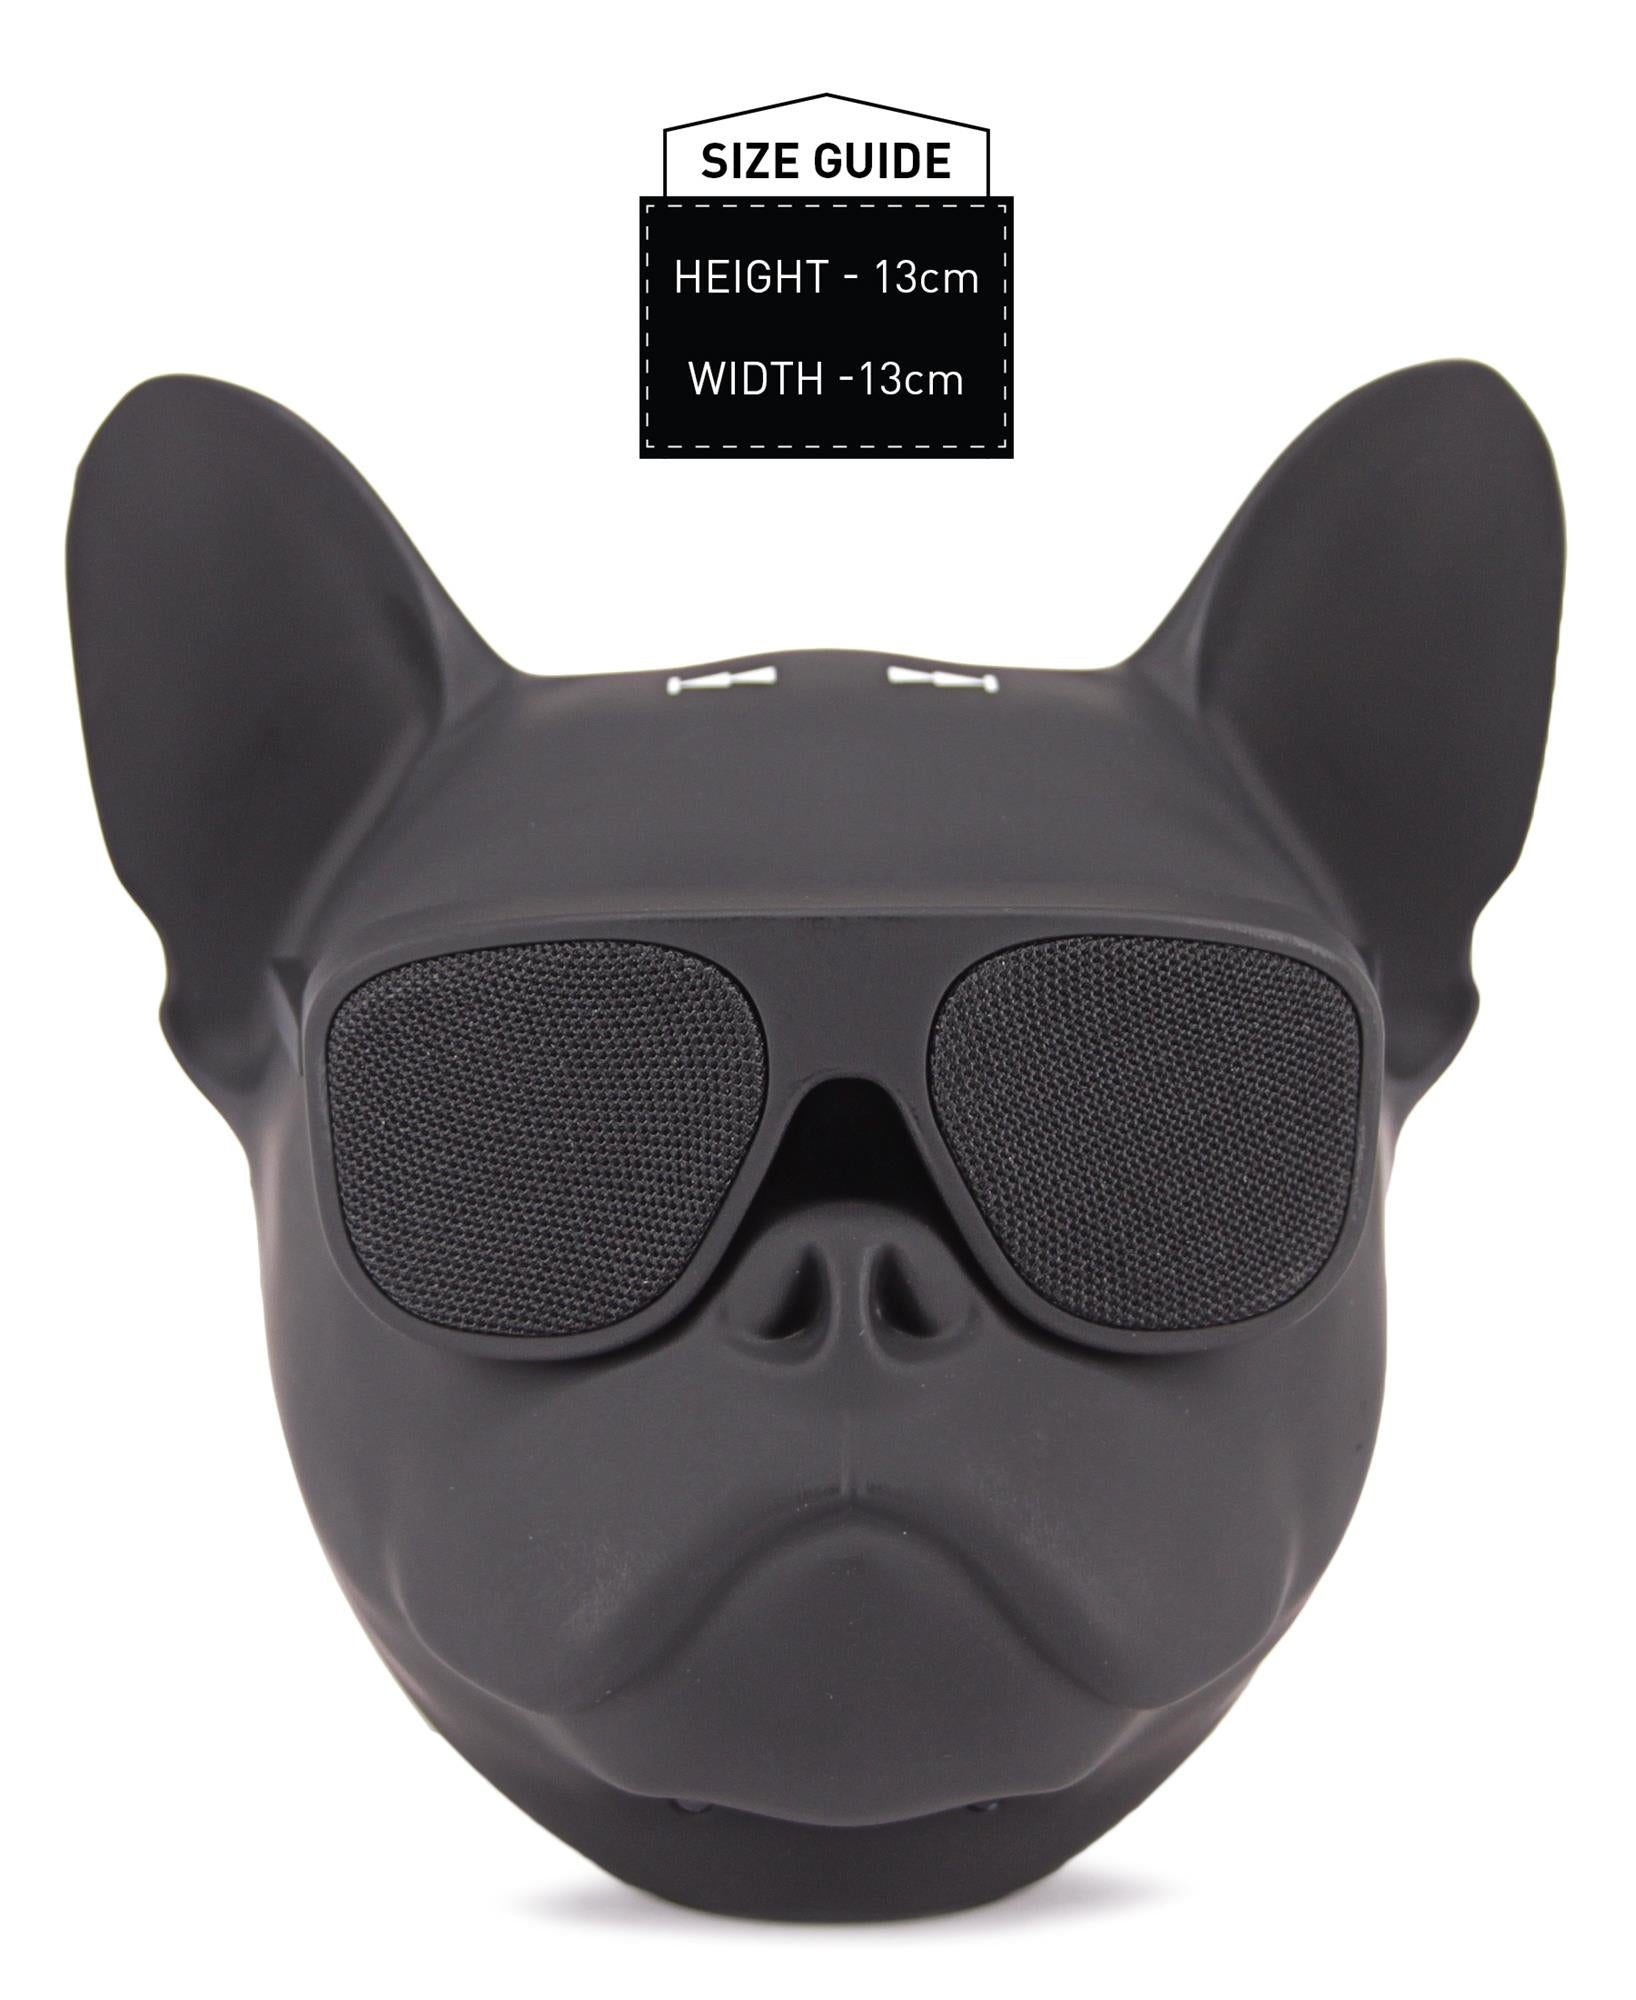 Dog Head Bluetooth Speaker - Black